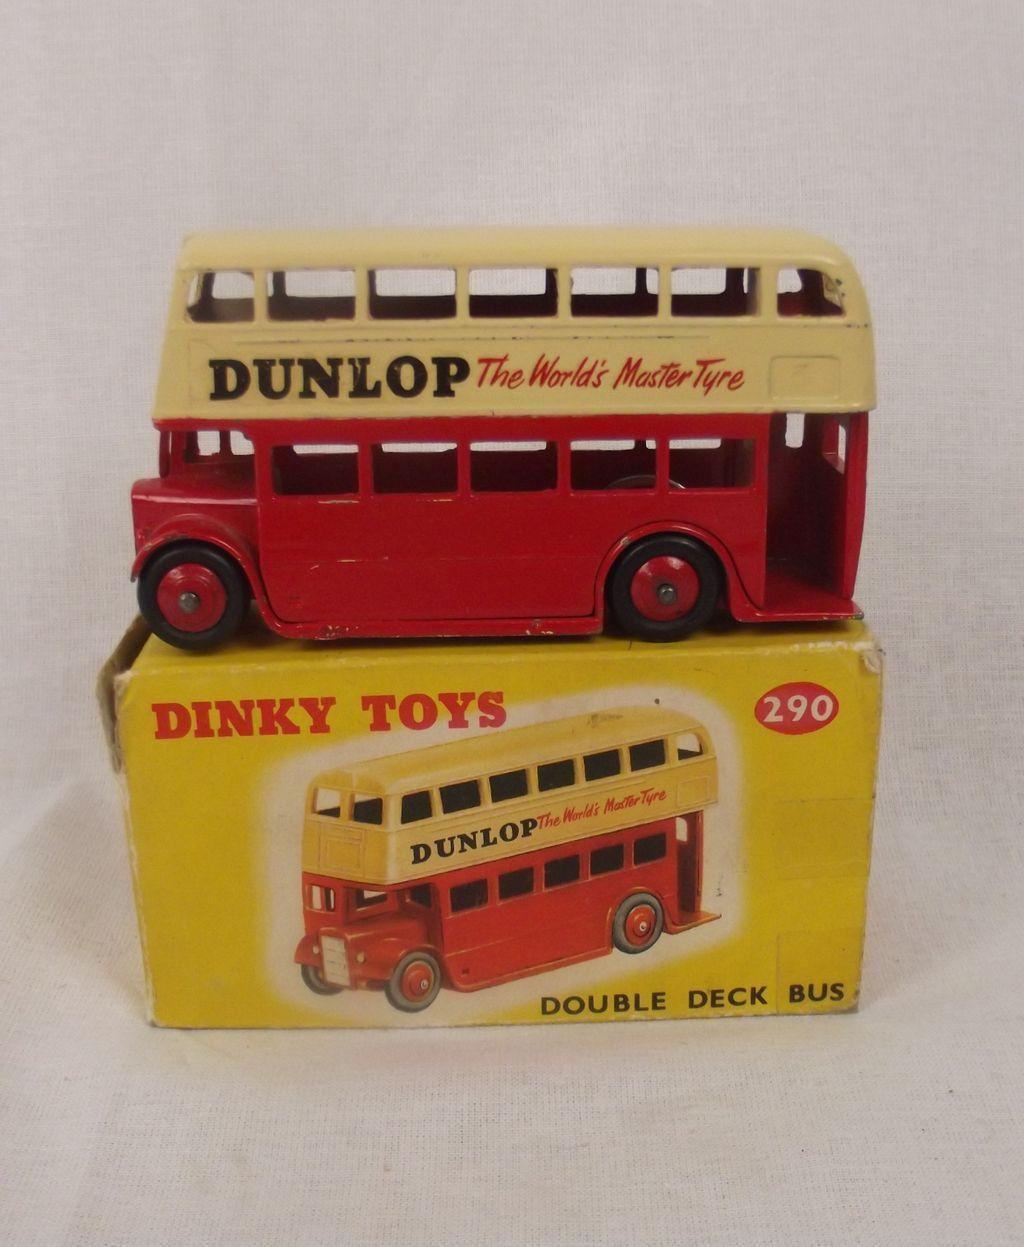 boxed dinky toys no 290 double deck bus dunlop 1959. Black Bedroom Furniture Sets. Home Design Ideas